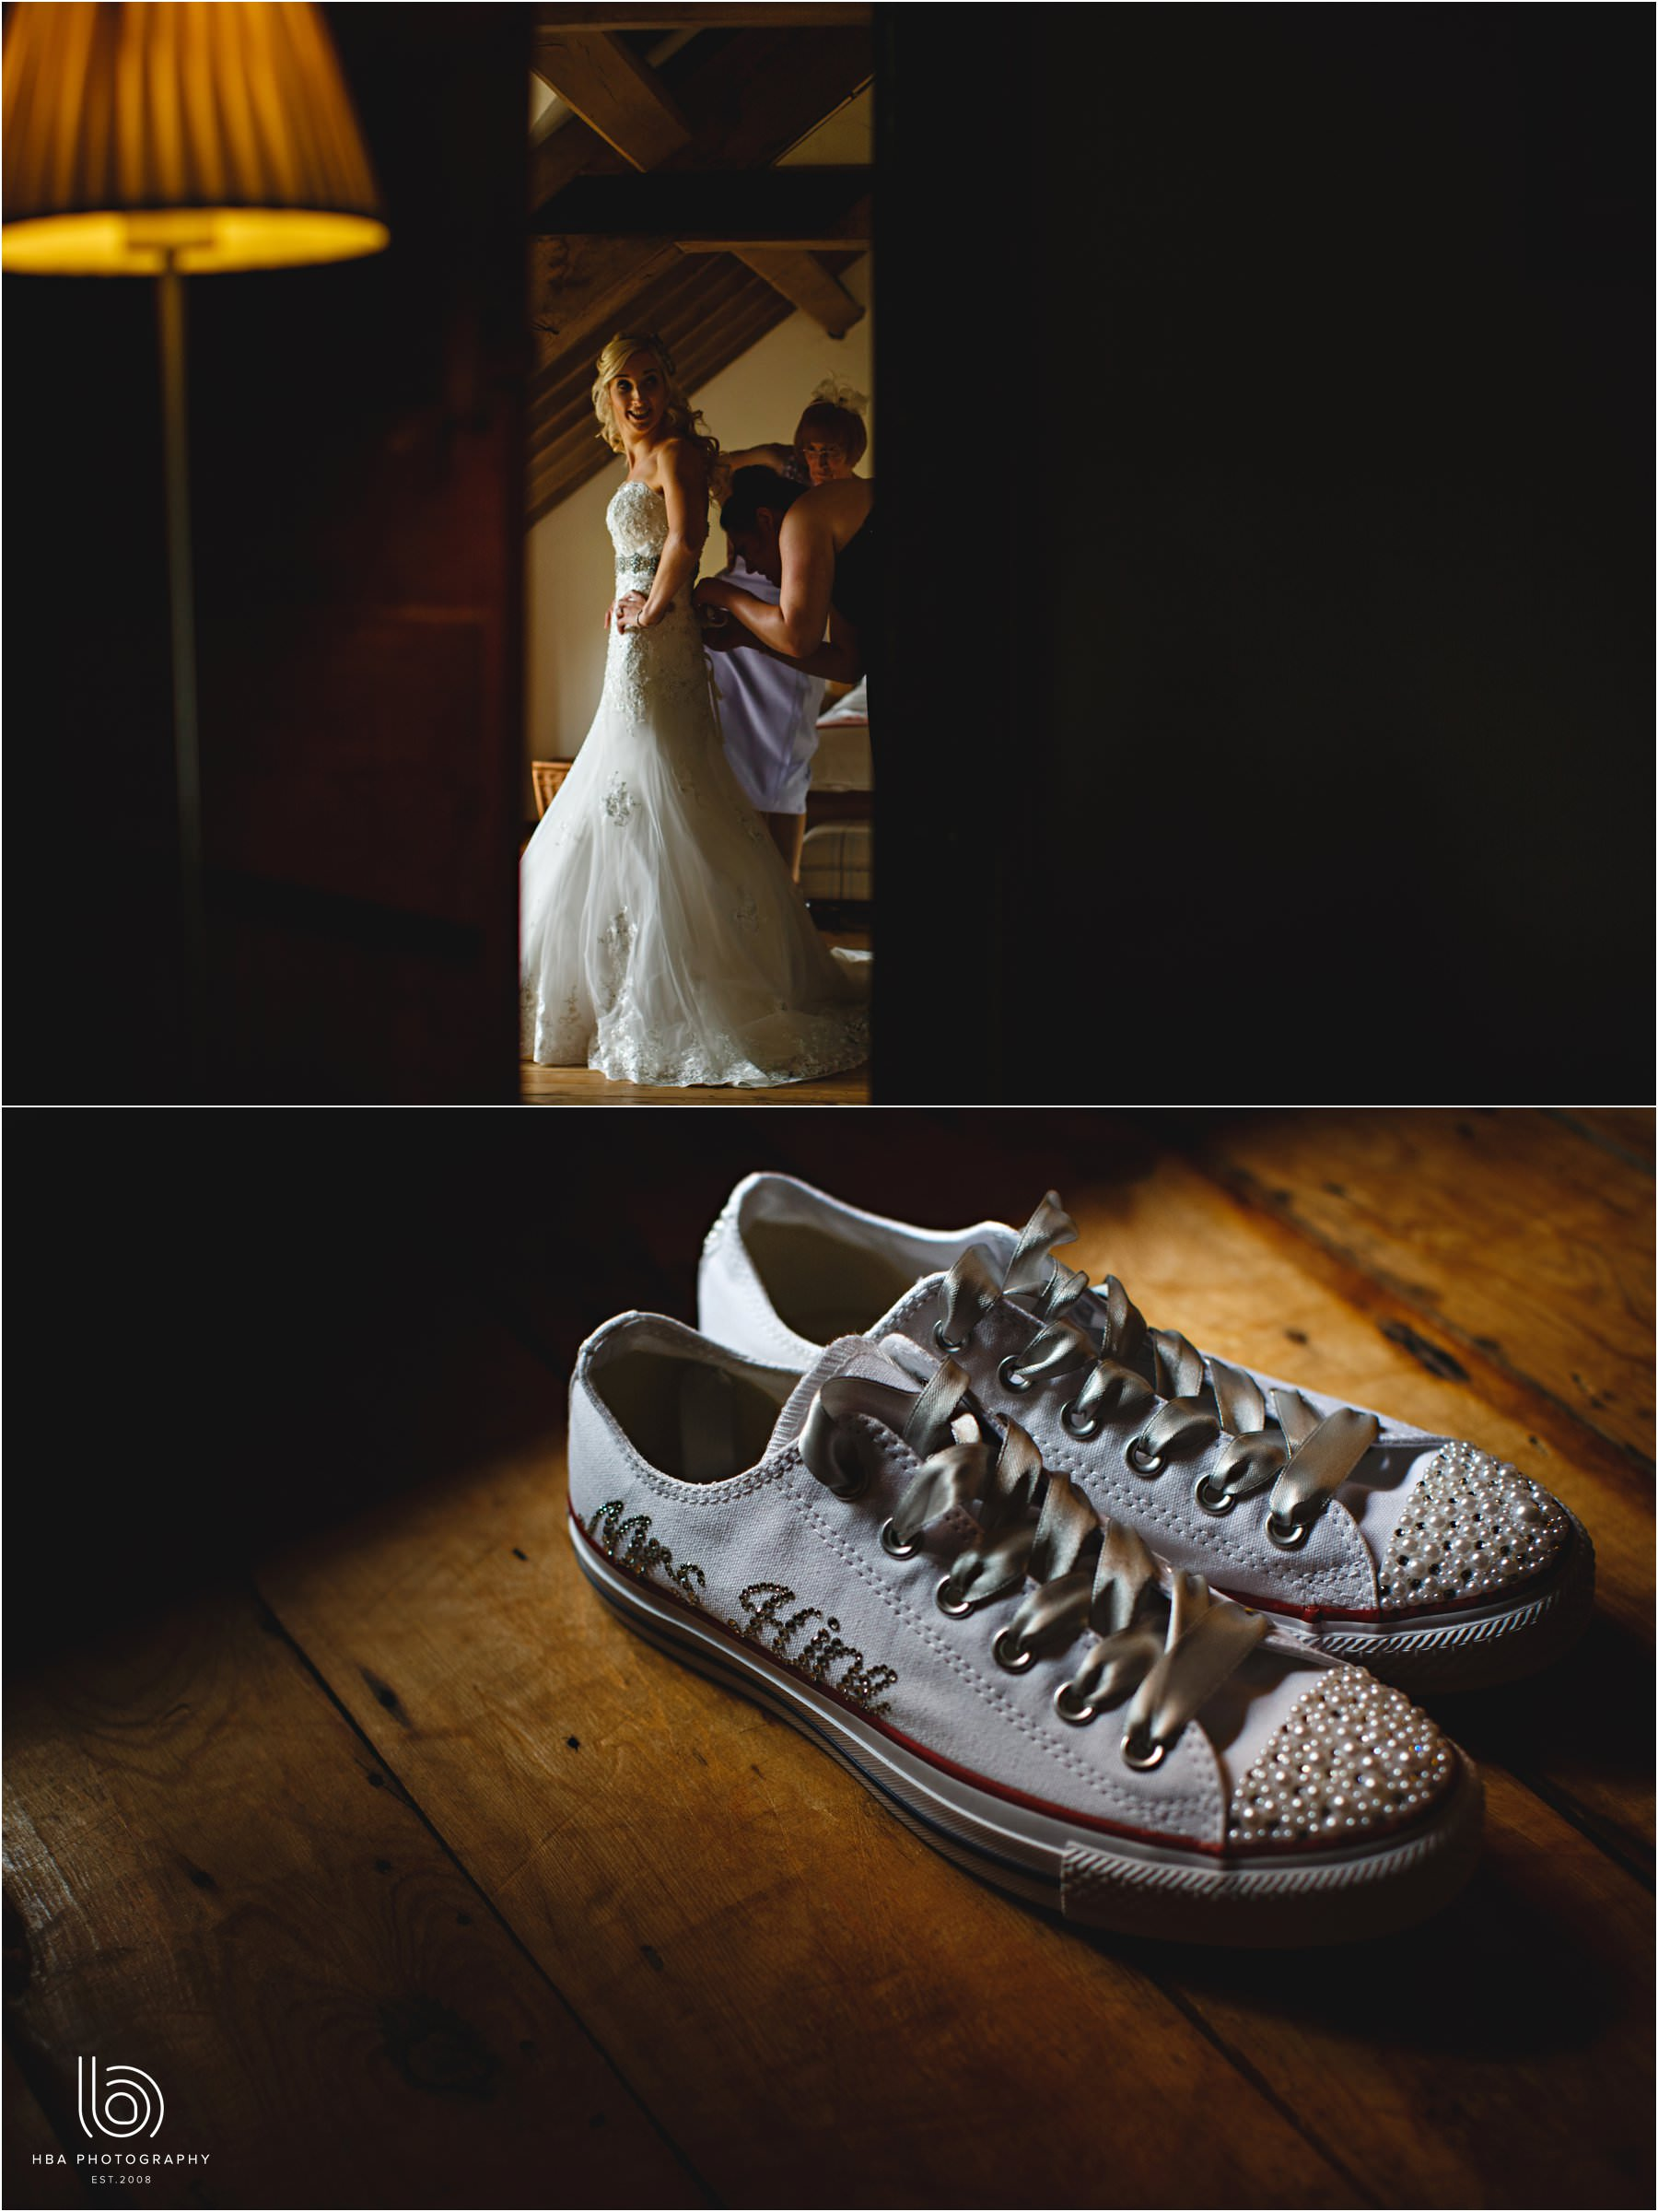 the bride's converse trainers